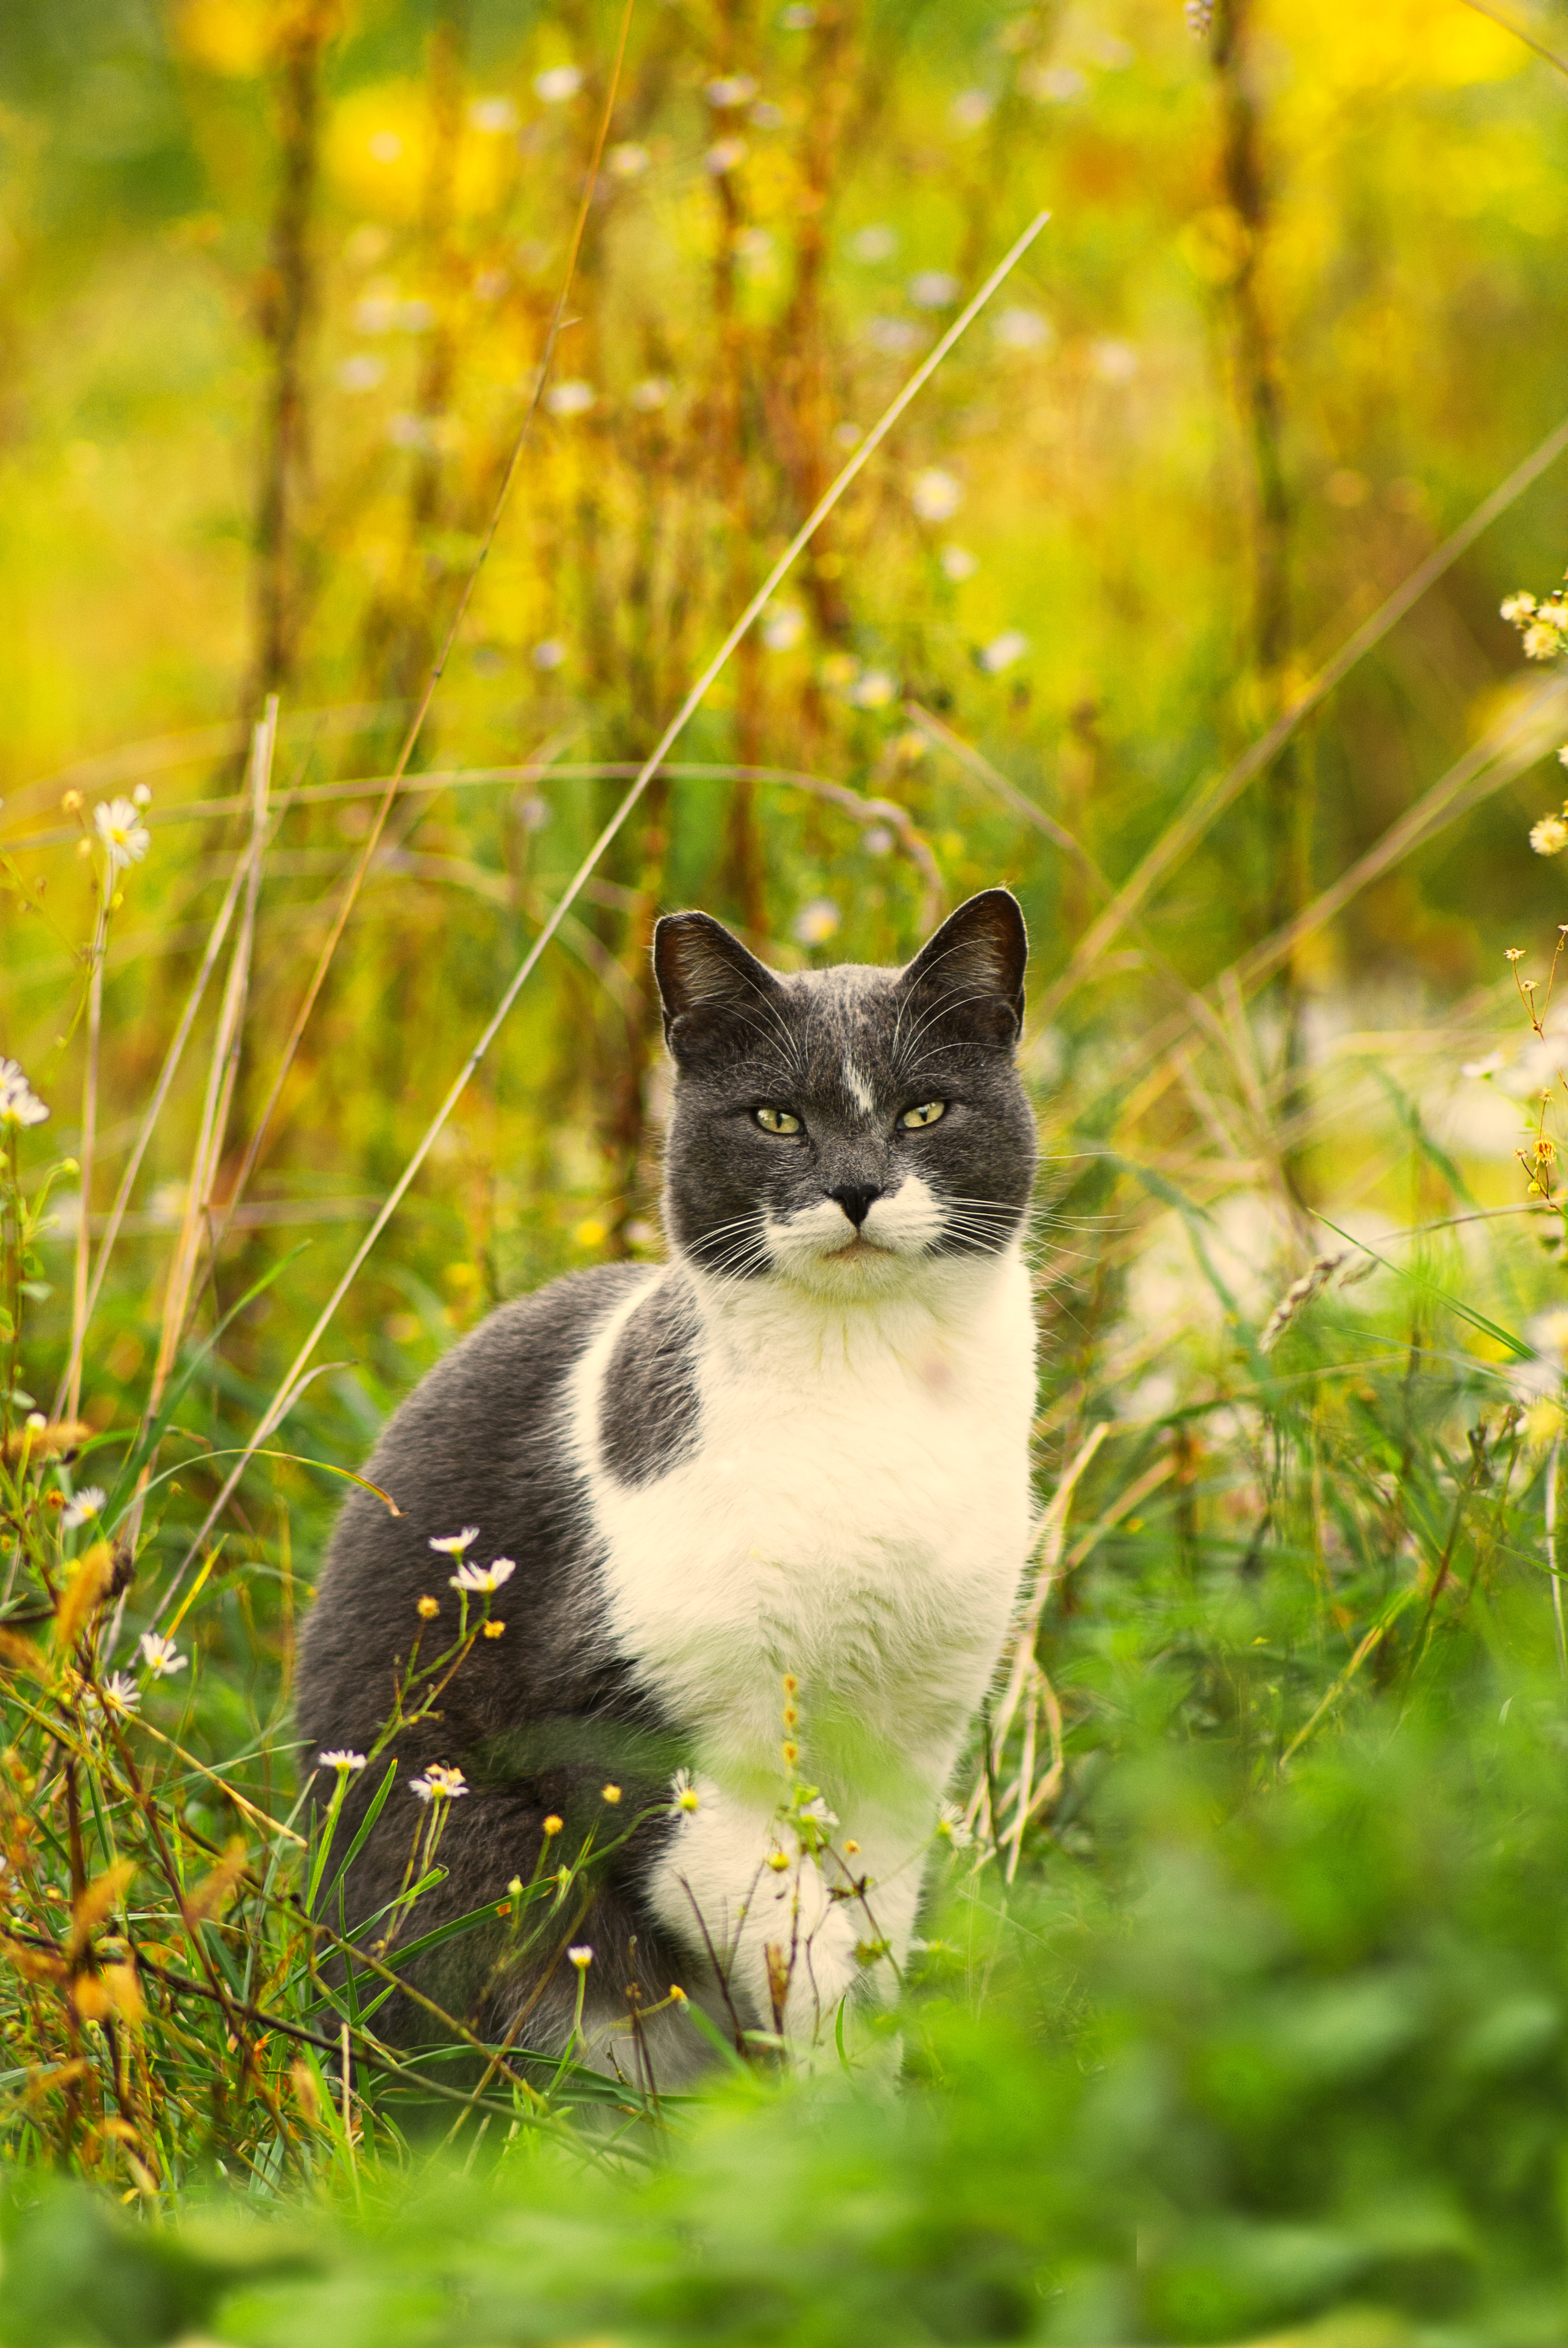 64358 download wallpaper Animals, Cat, Grass, Pet, Flowers screensavers and pictures for free